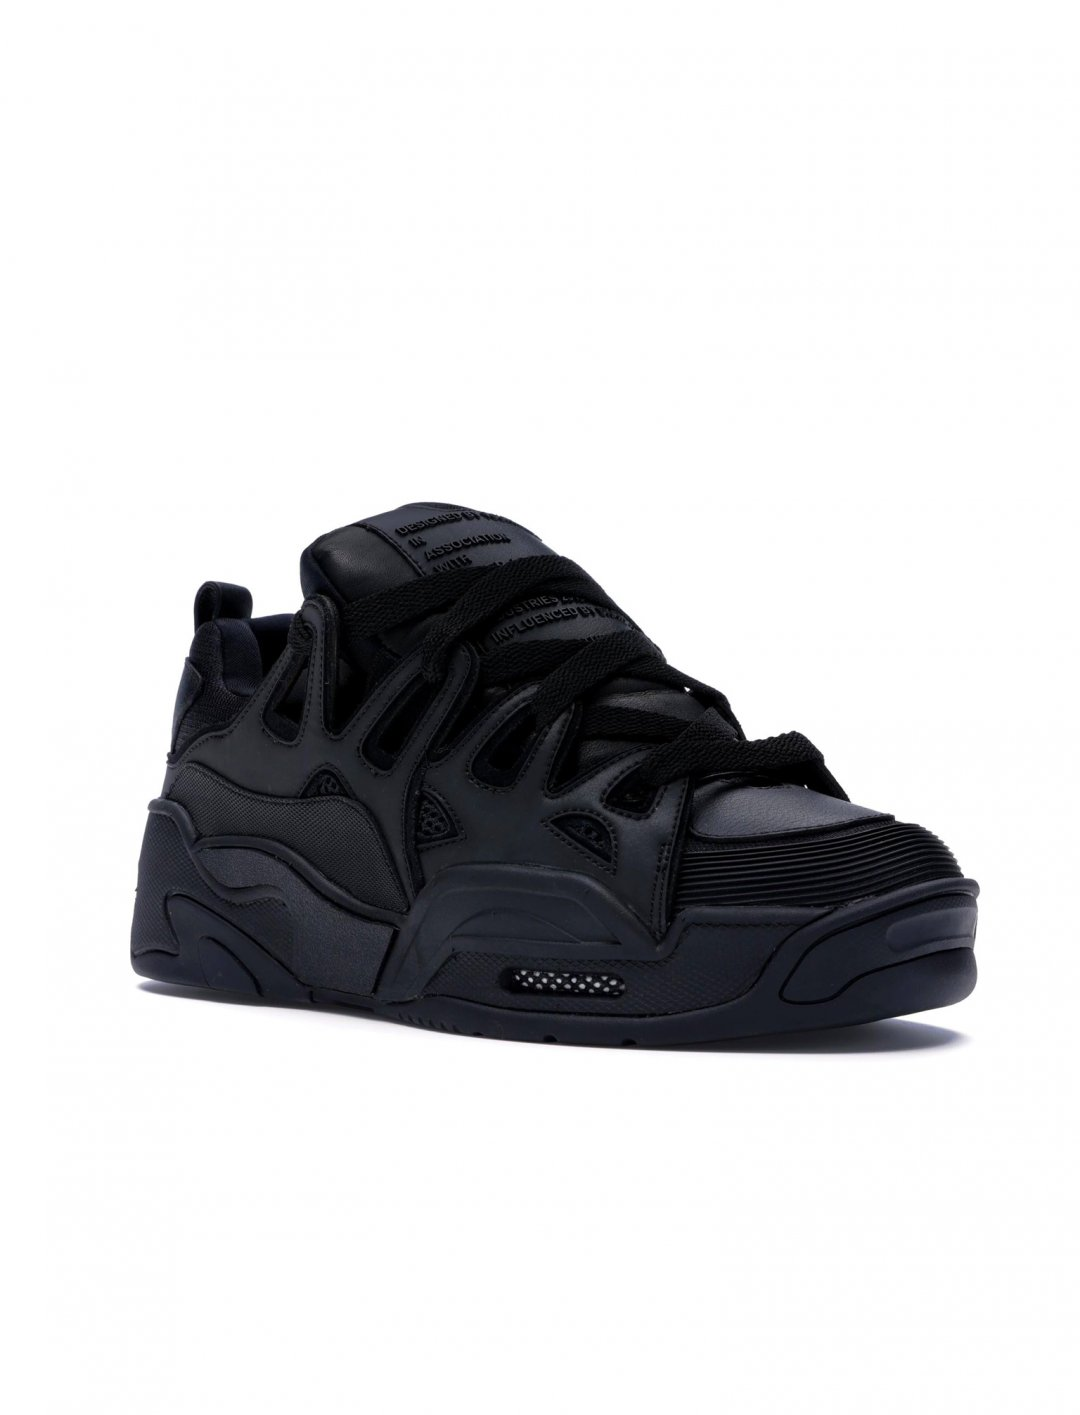 "SRLo Black Sneakers {""id"":12,""product_section_id"":1,""name"":""Shoes"",""order"":12} Under Armour x ASAP Rocky"